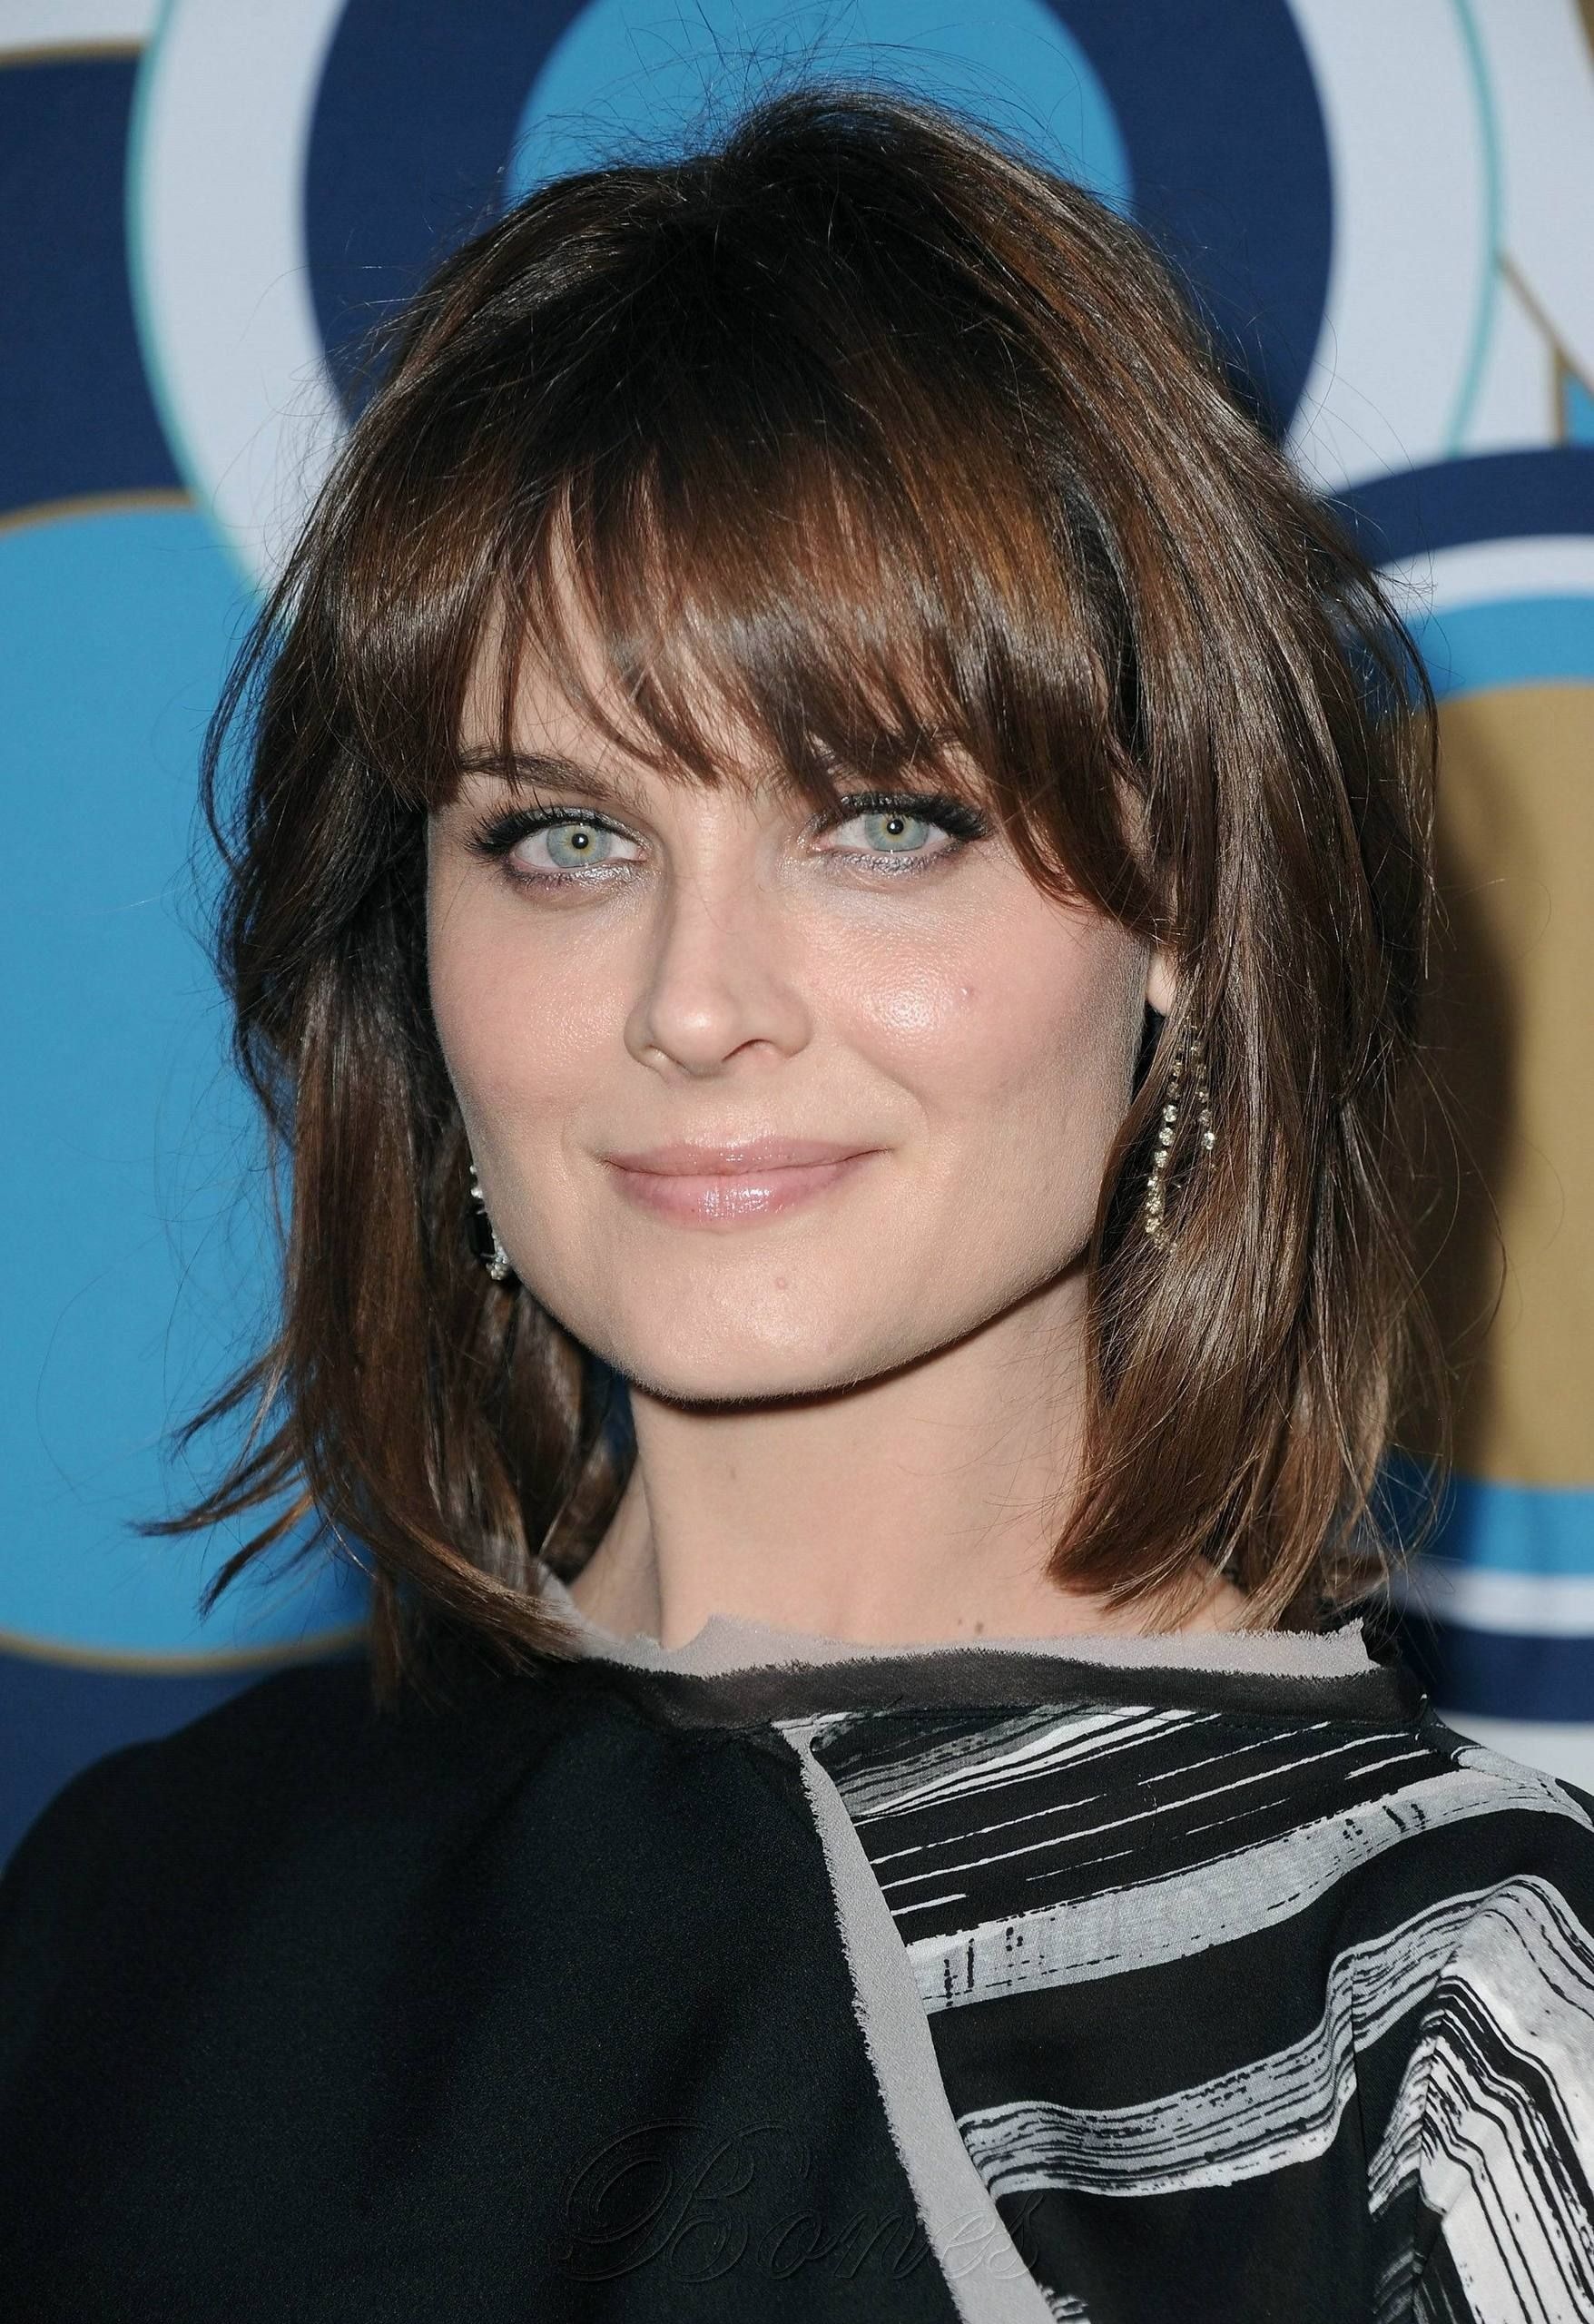 Pelo Corto Cara Cuadrada Photo Of Emily Deschanel Hq Images Of The Fox Fall Party